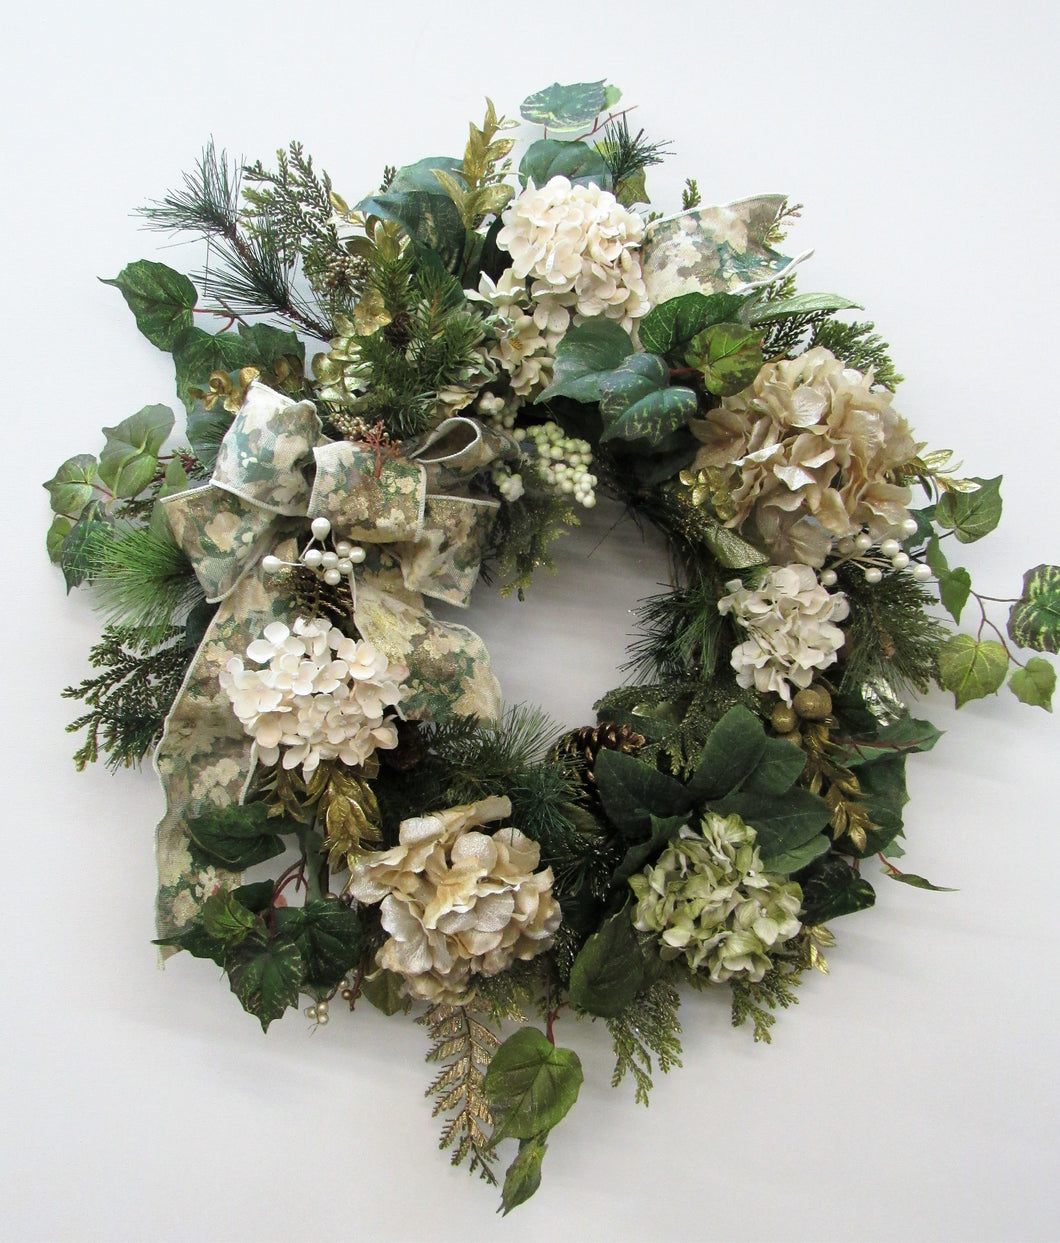 Gallery/Hol34 - April's Garden Wreath